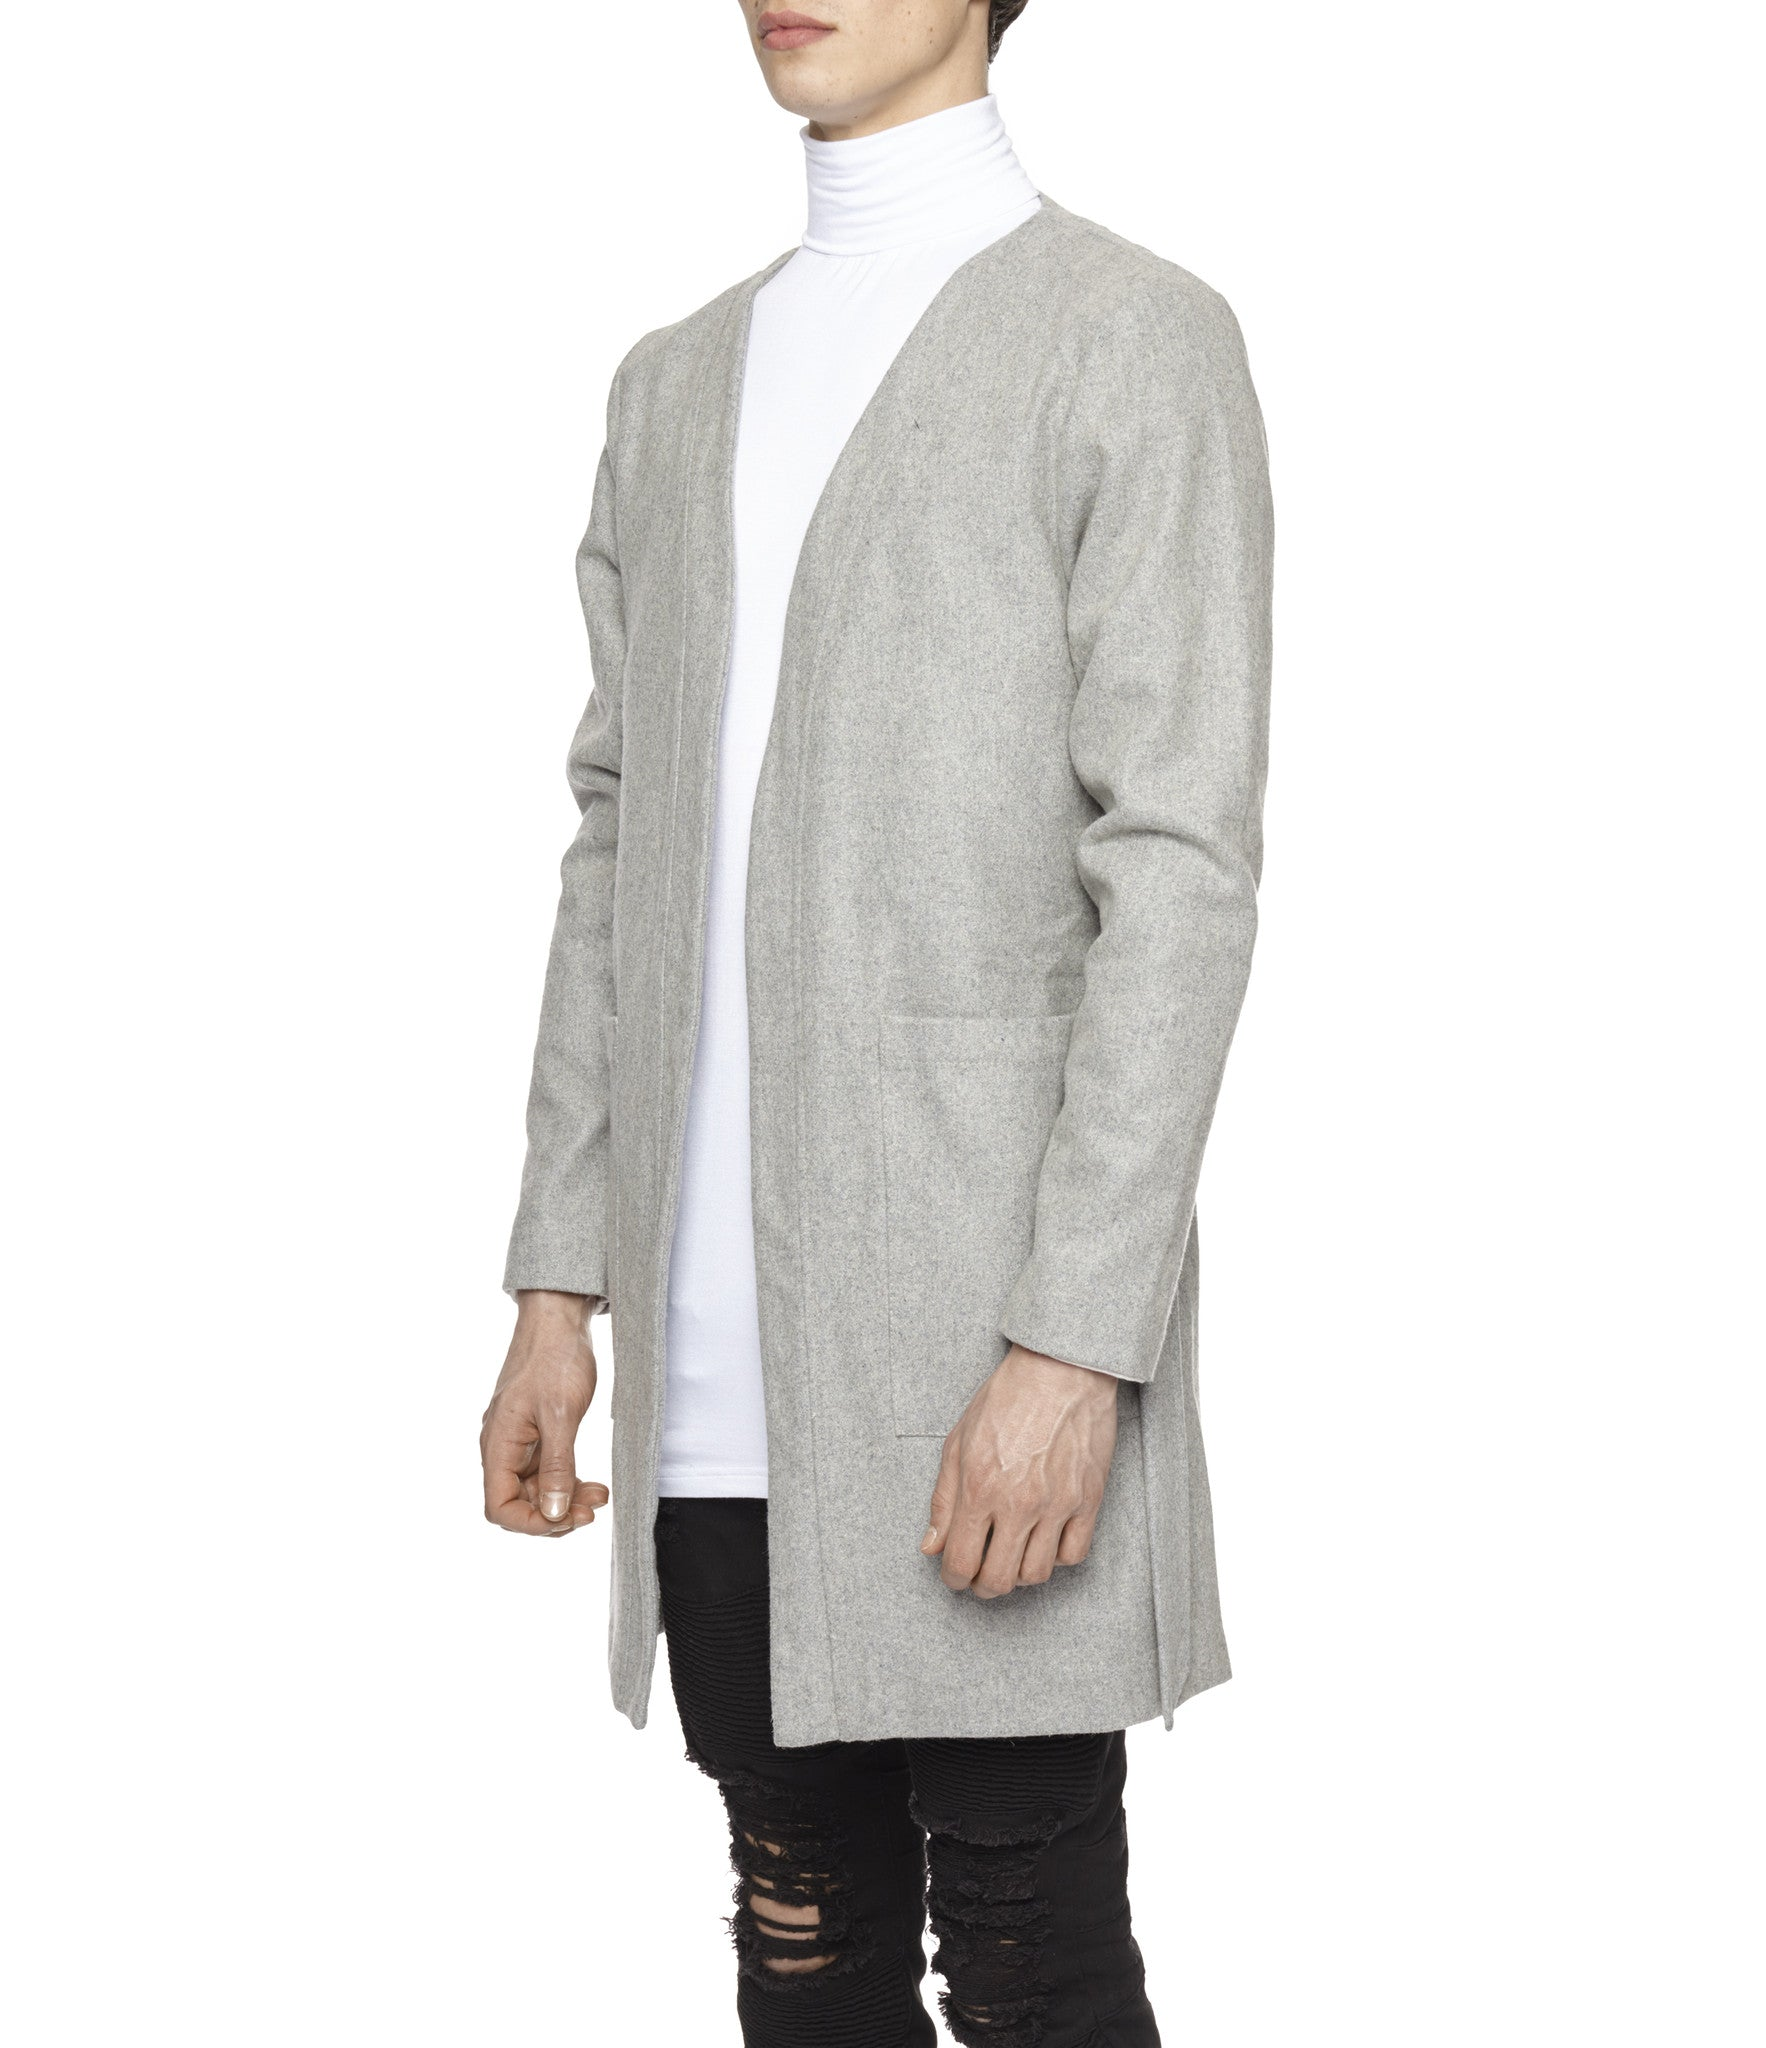 KM070 Wool Blend Kimono Coat - Grey - underated london - underatedco - 4